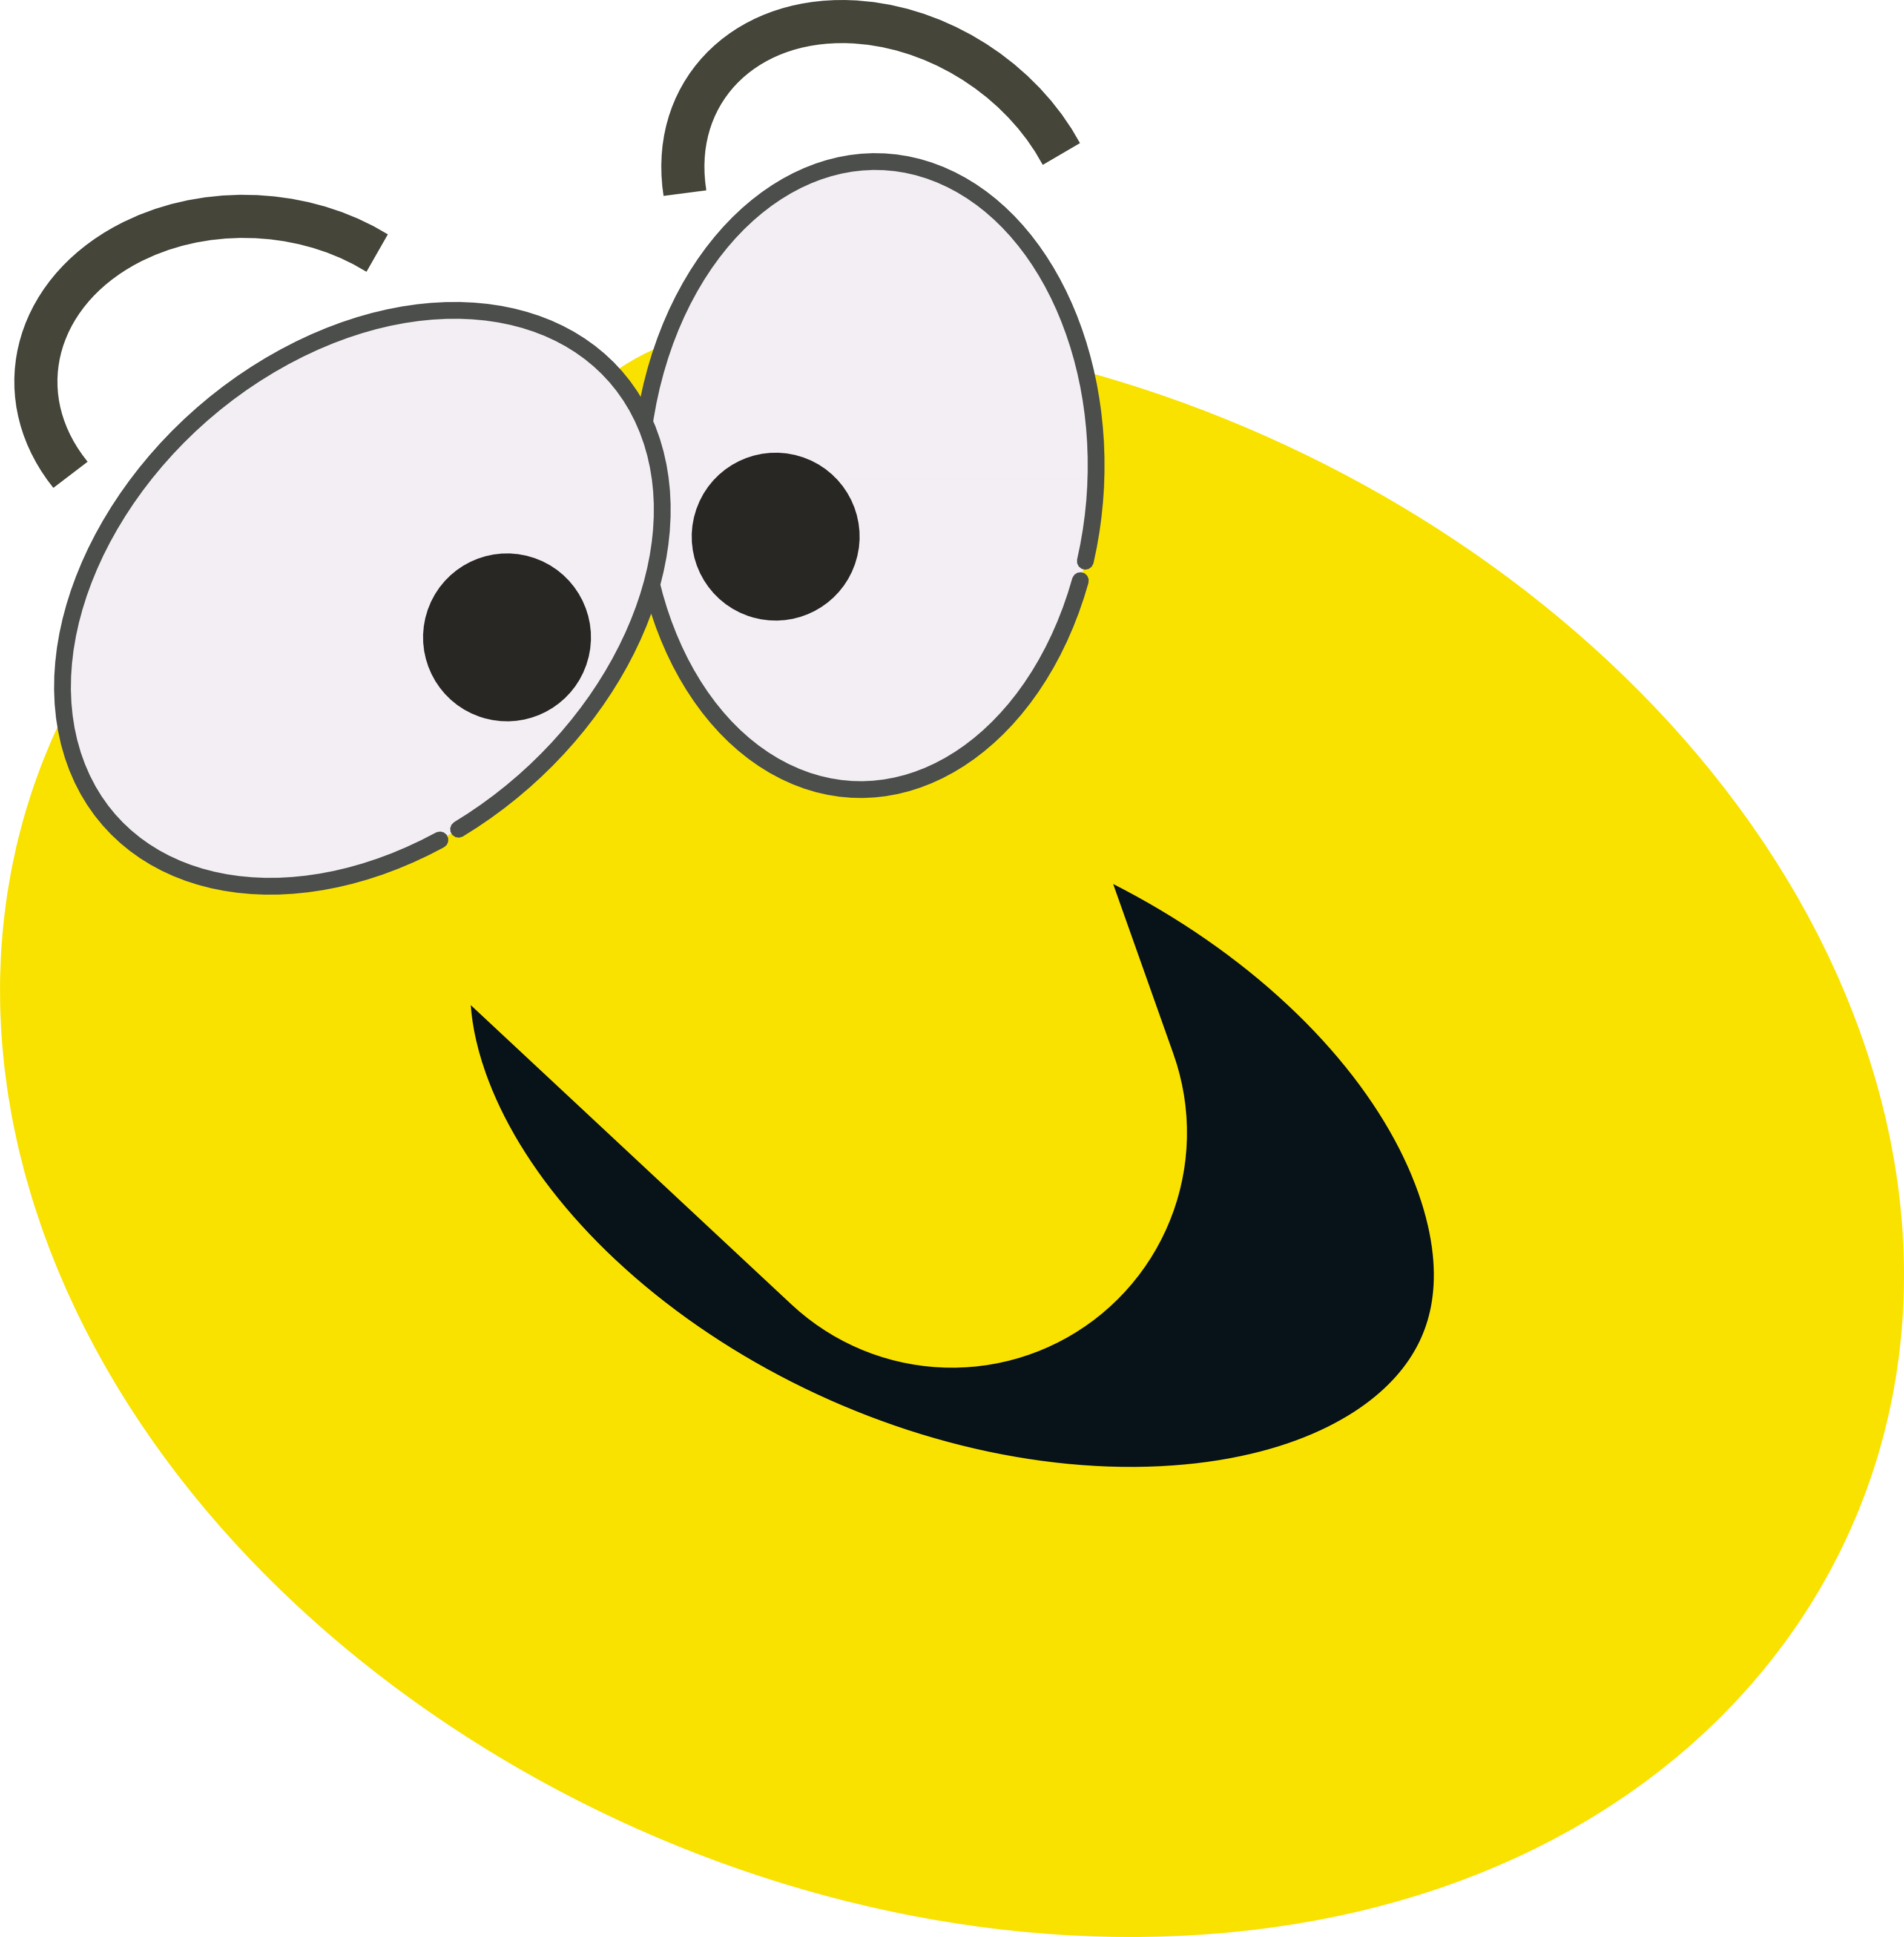 3145x3200 Smiley Face Clip Art Free Download